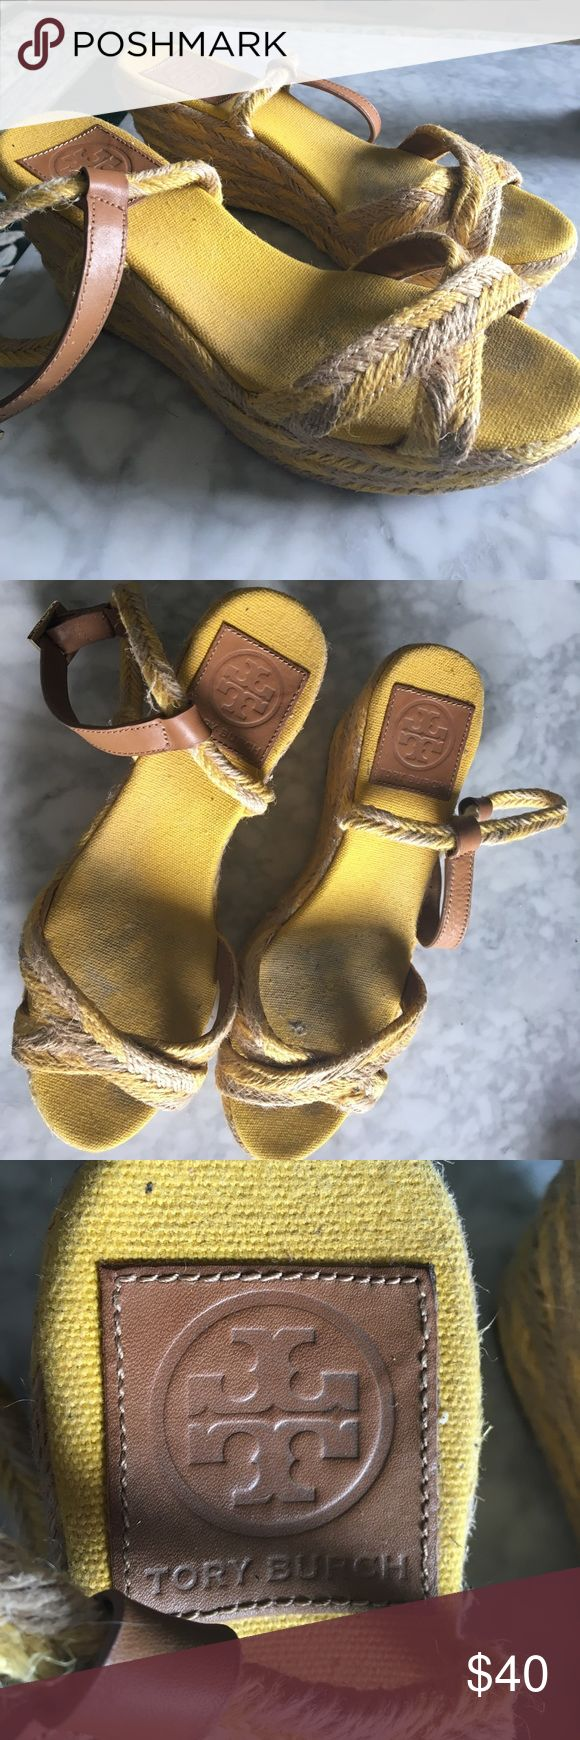 Tory Burch Yellow Espadrille Sandals size 7.5 Barely worn!! Tory Burch Shoes Espadrilles